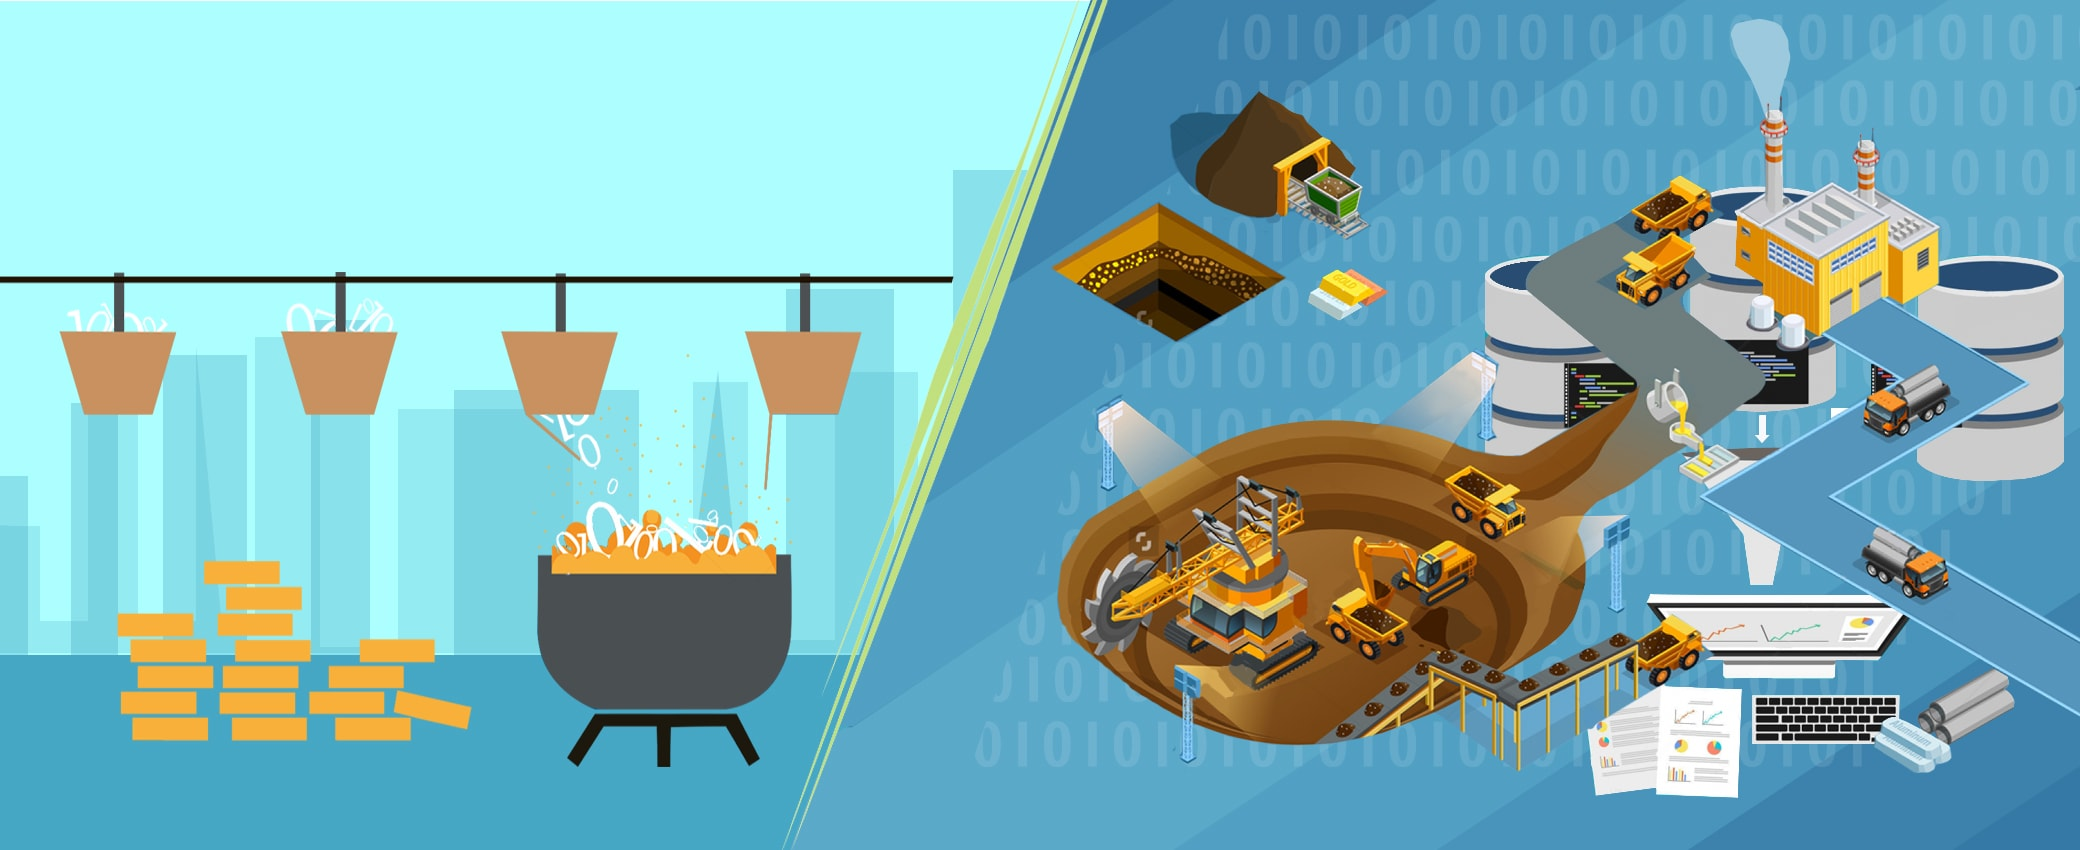 advantages-of-data-mining-services-in-your-business